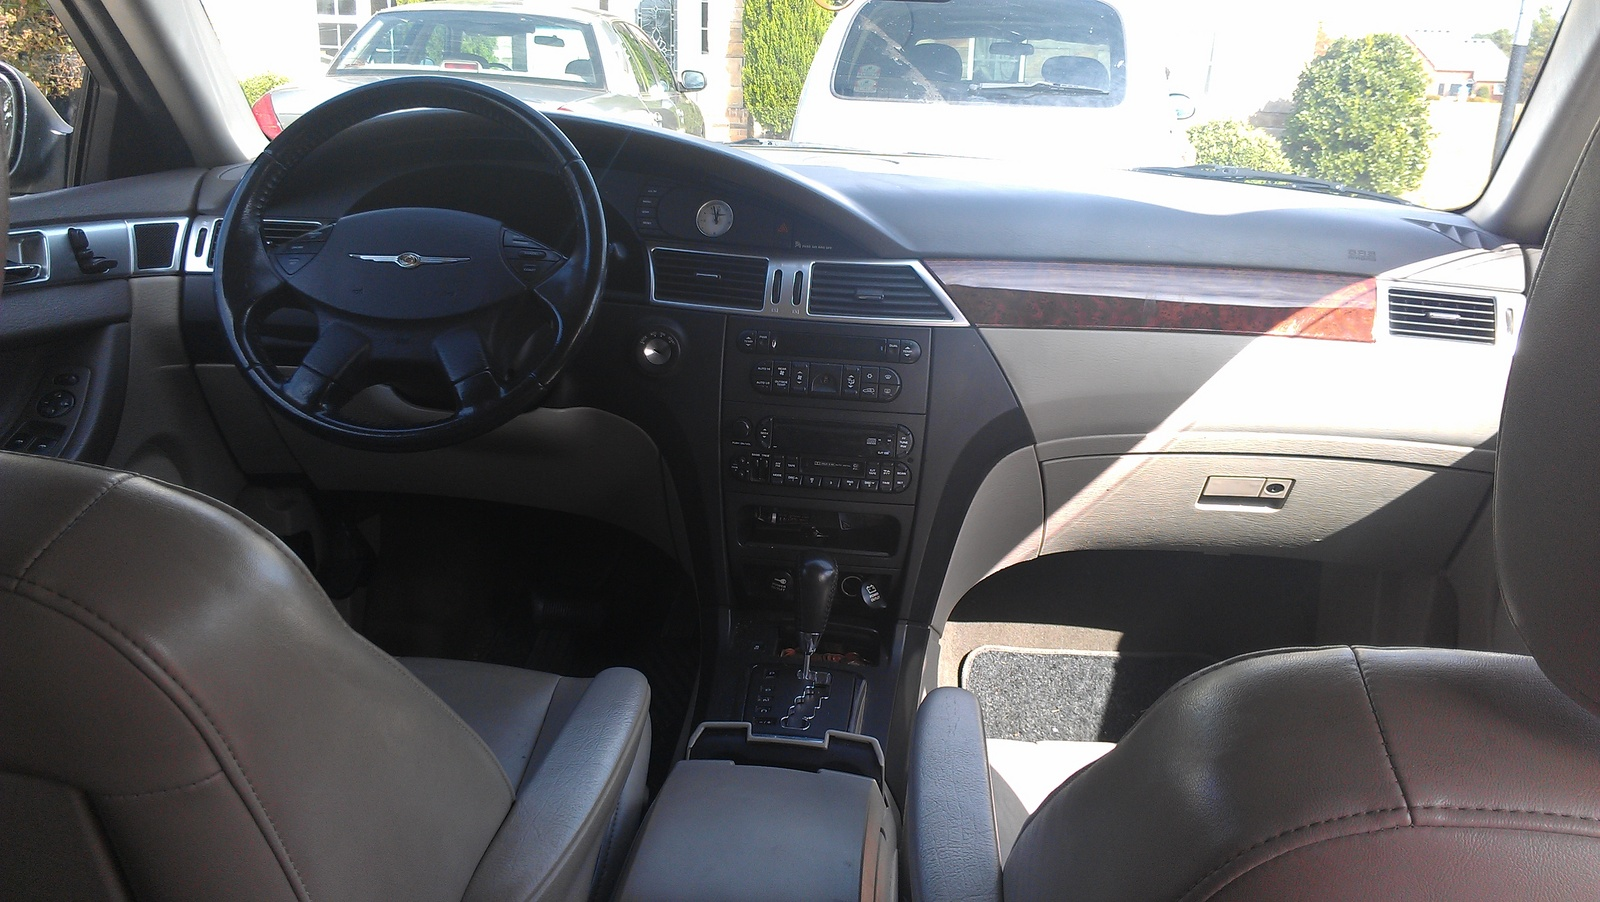 2006 chrysler pacifica interior pictures cargurus. Black Bedroom Furniture Sets. Home Design Ideas